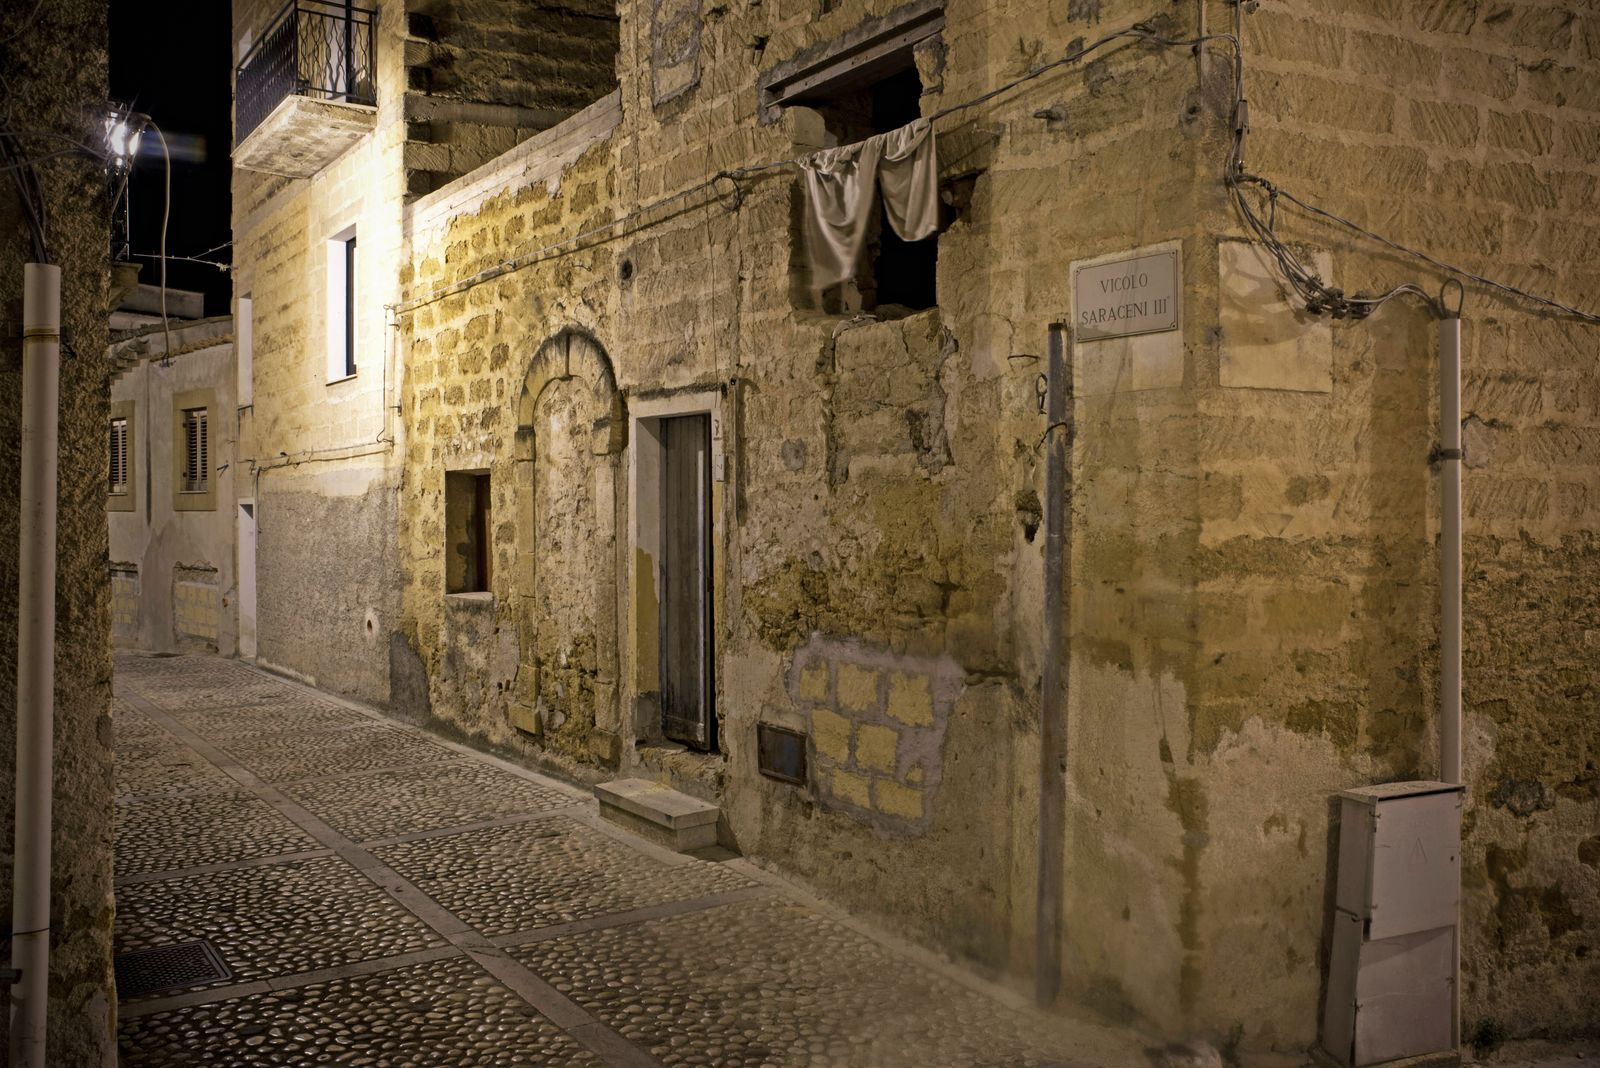 ITALY - SICILY, WHERE TO BUY A HOUSE FOR 1? ¨ The alleys of the Saracen part of the old town of Sambuca di Sicilia, July